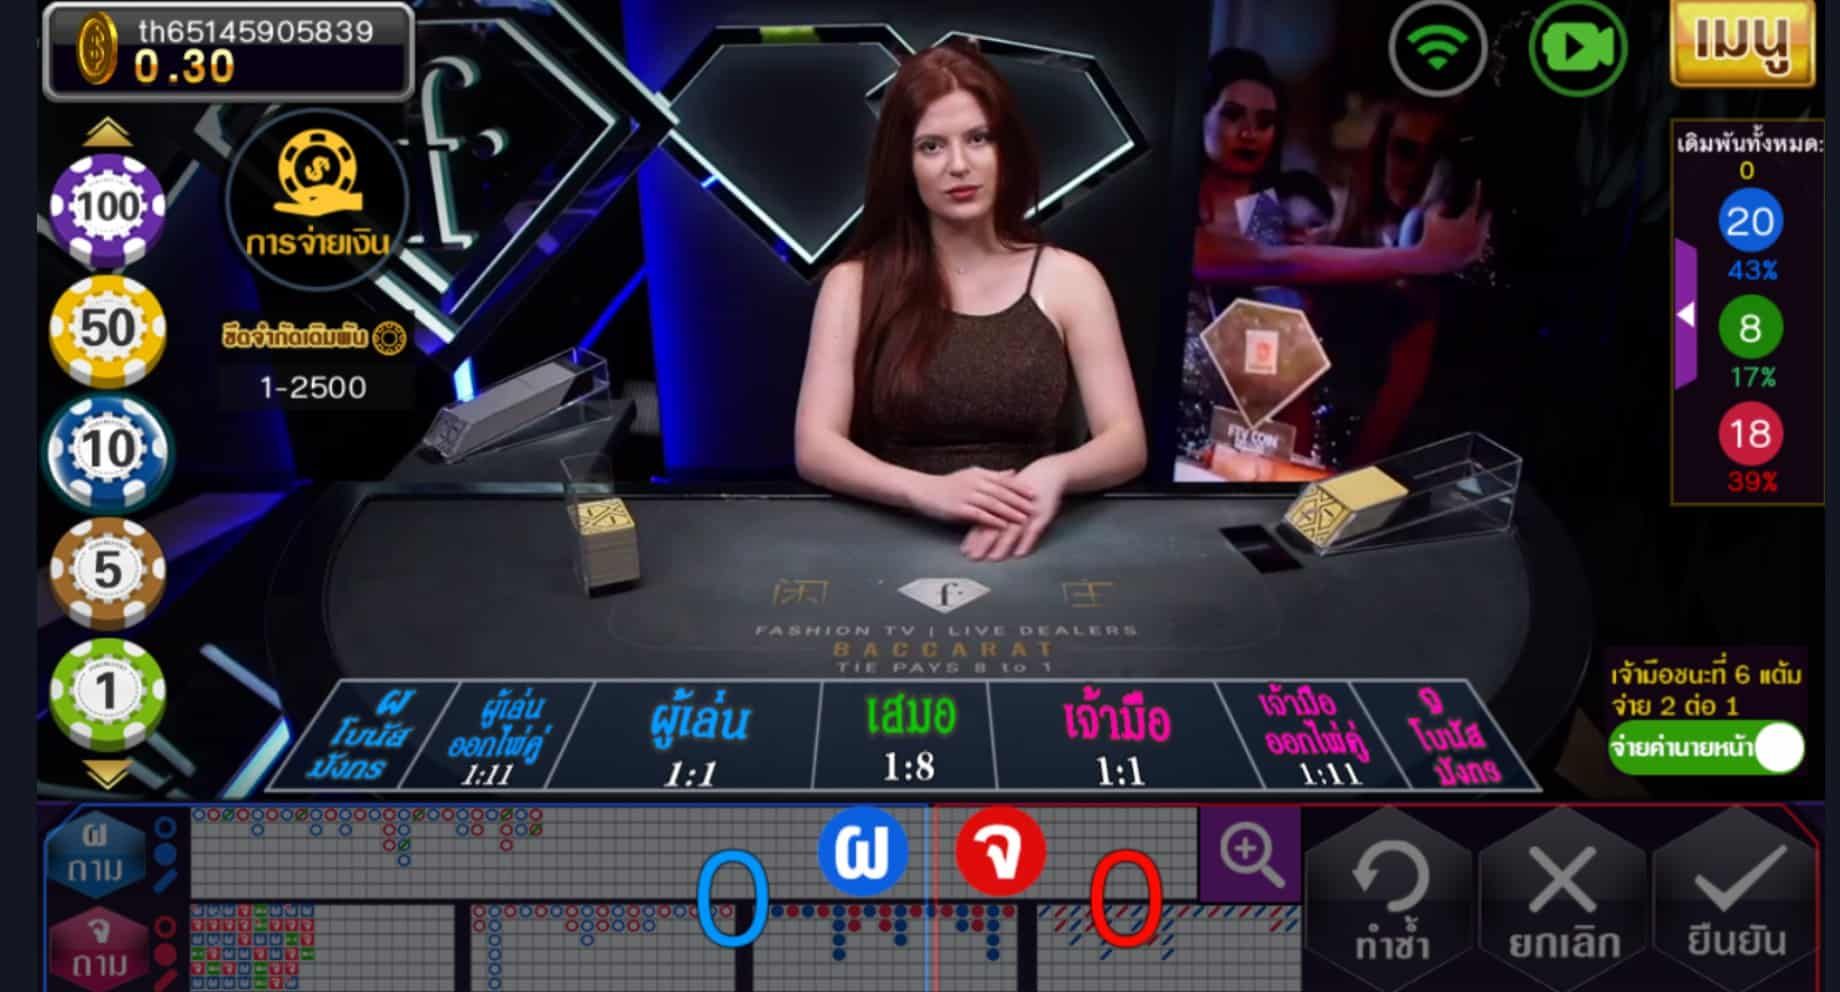 Baccarat online-pussy888